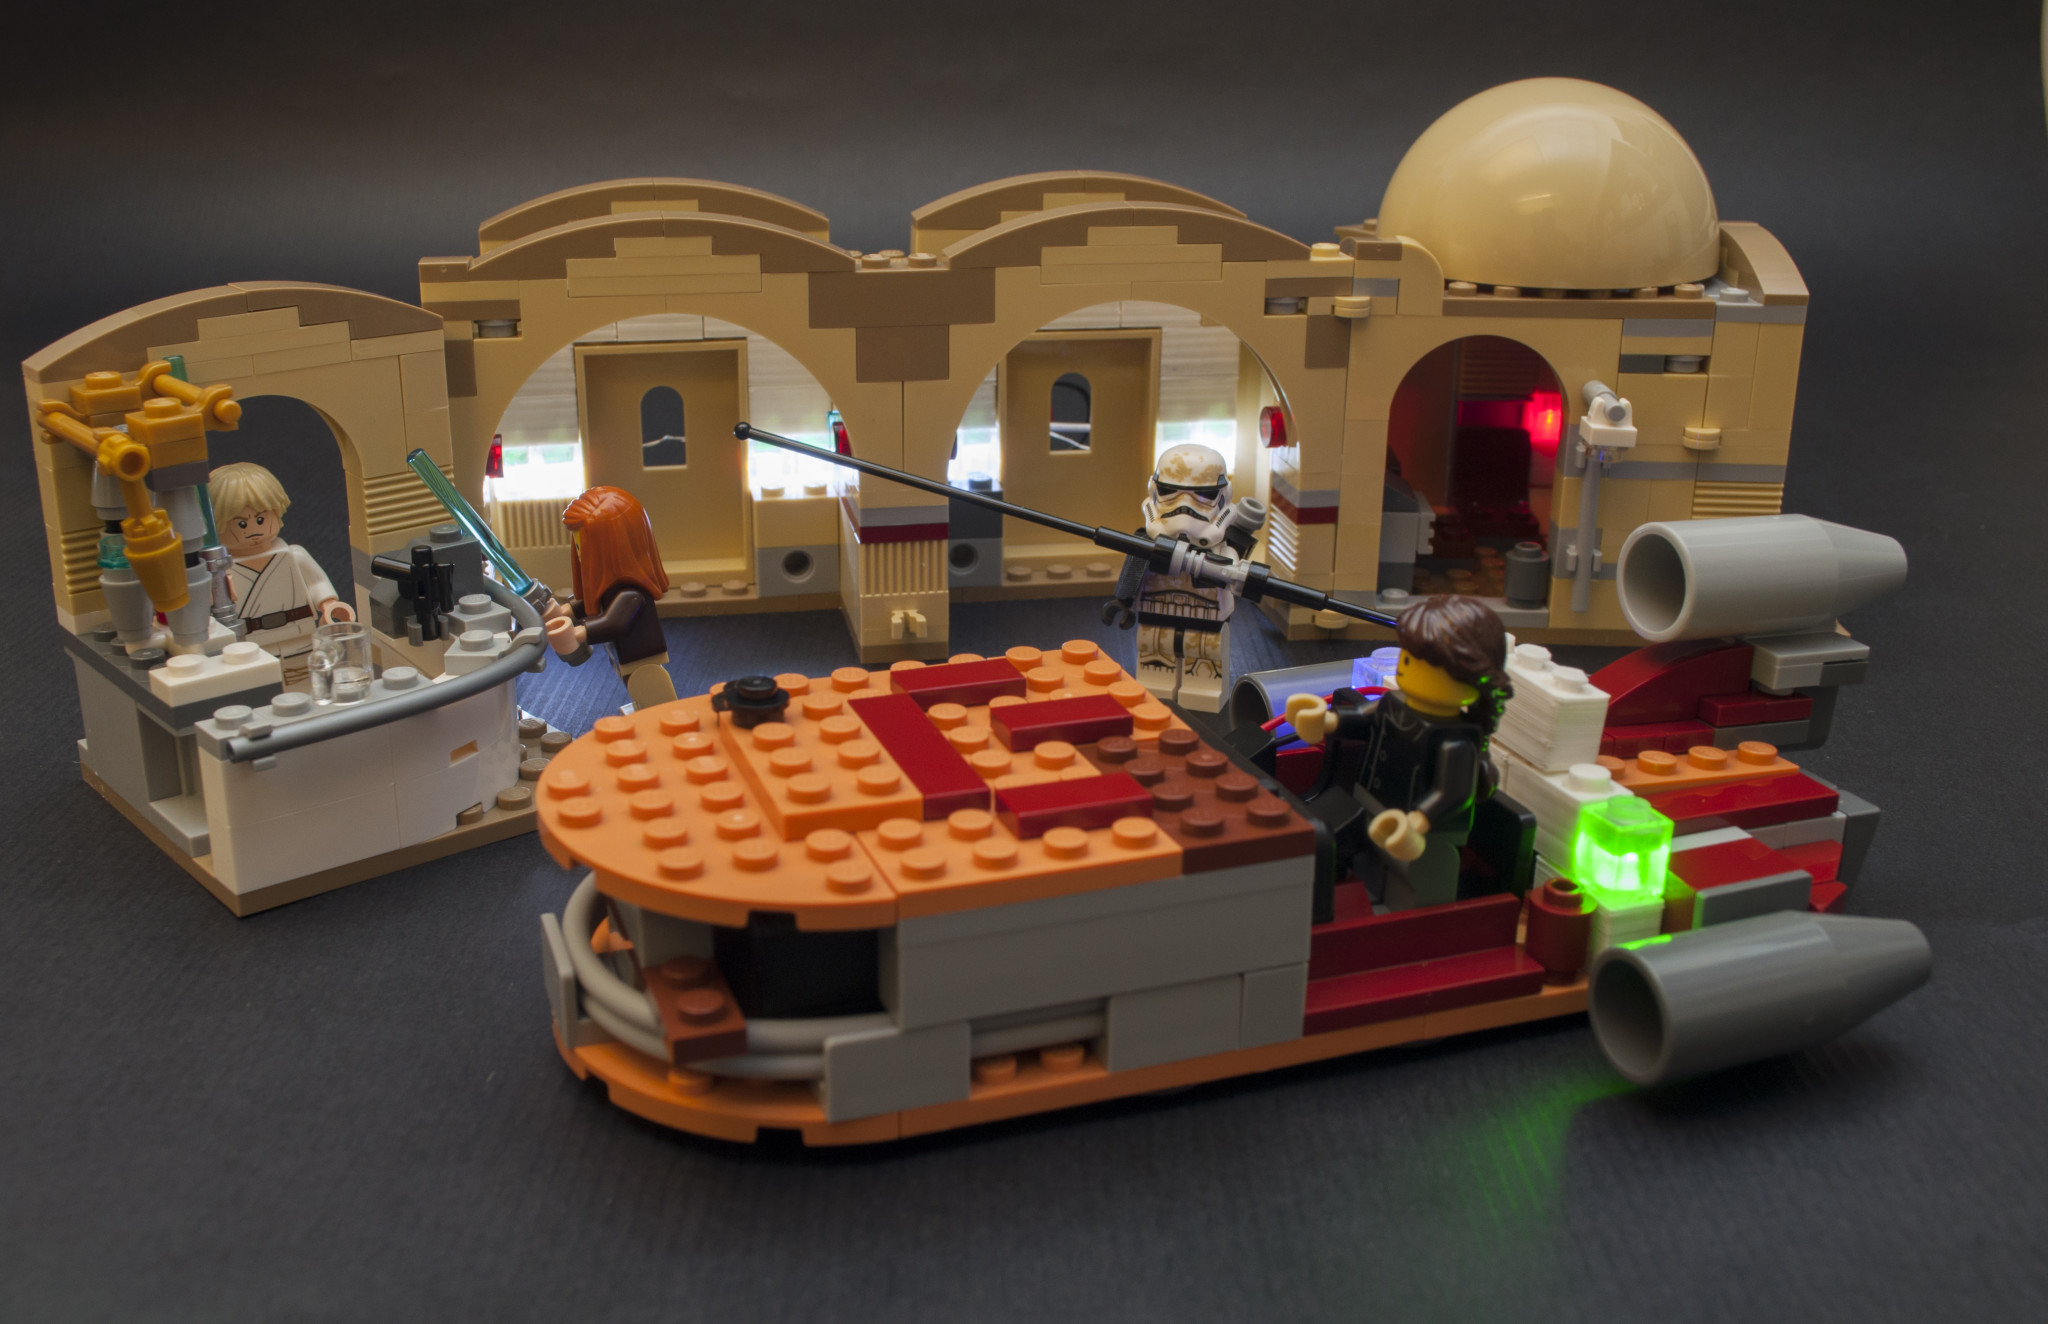 build upons legos with light up bricks